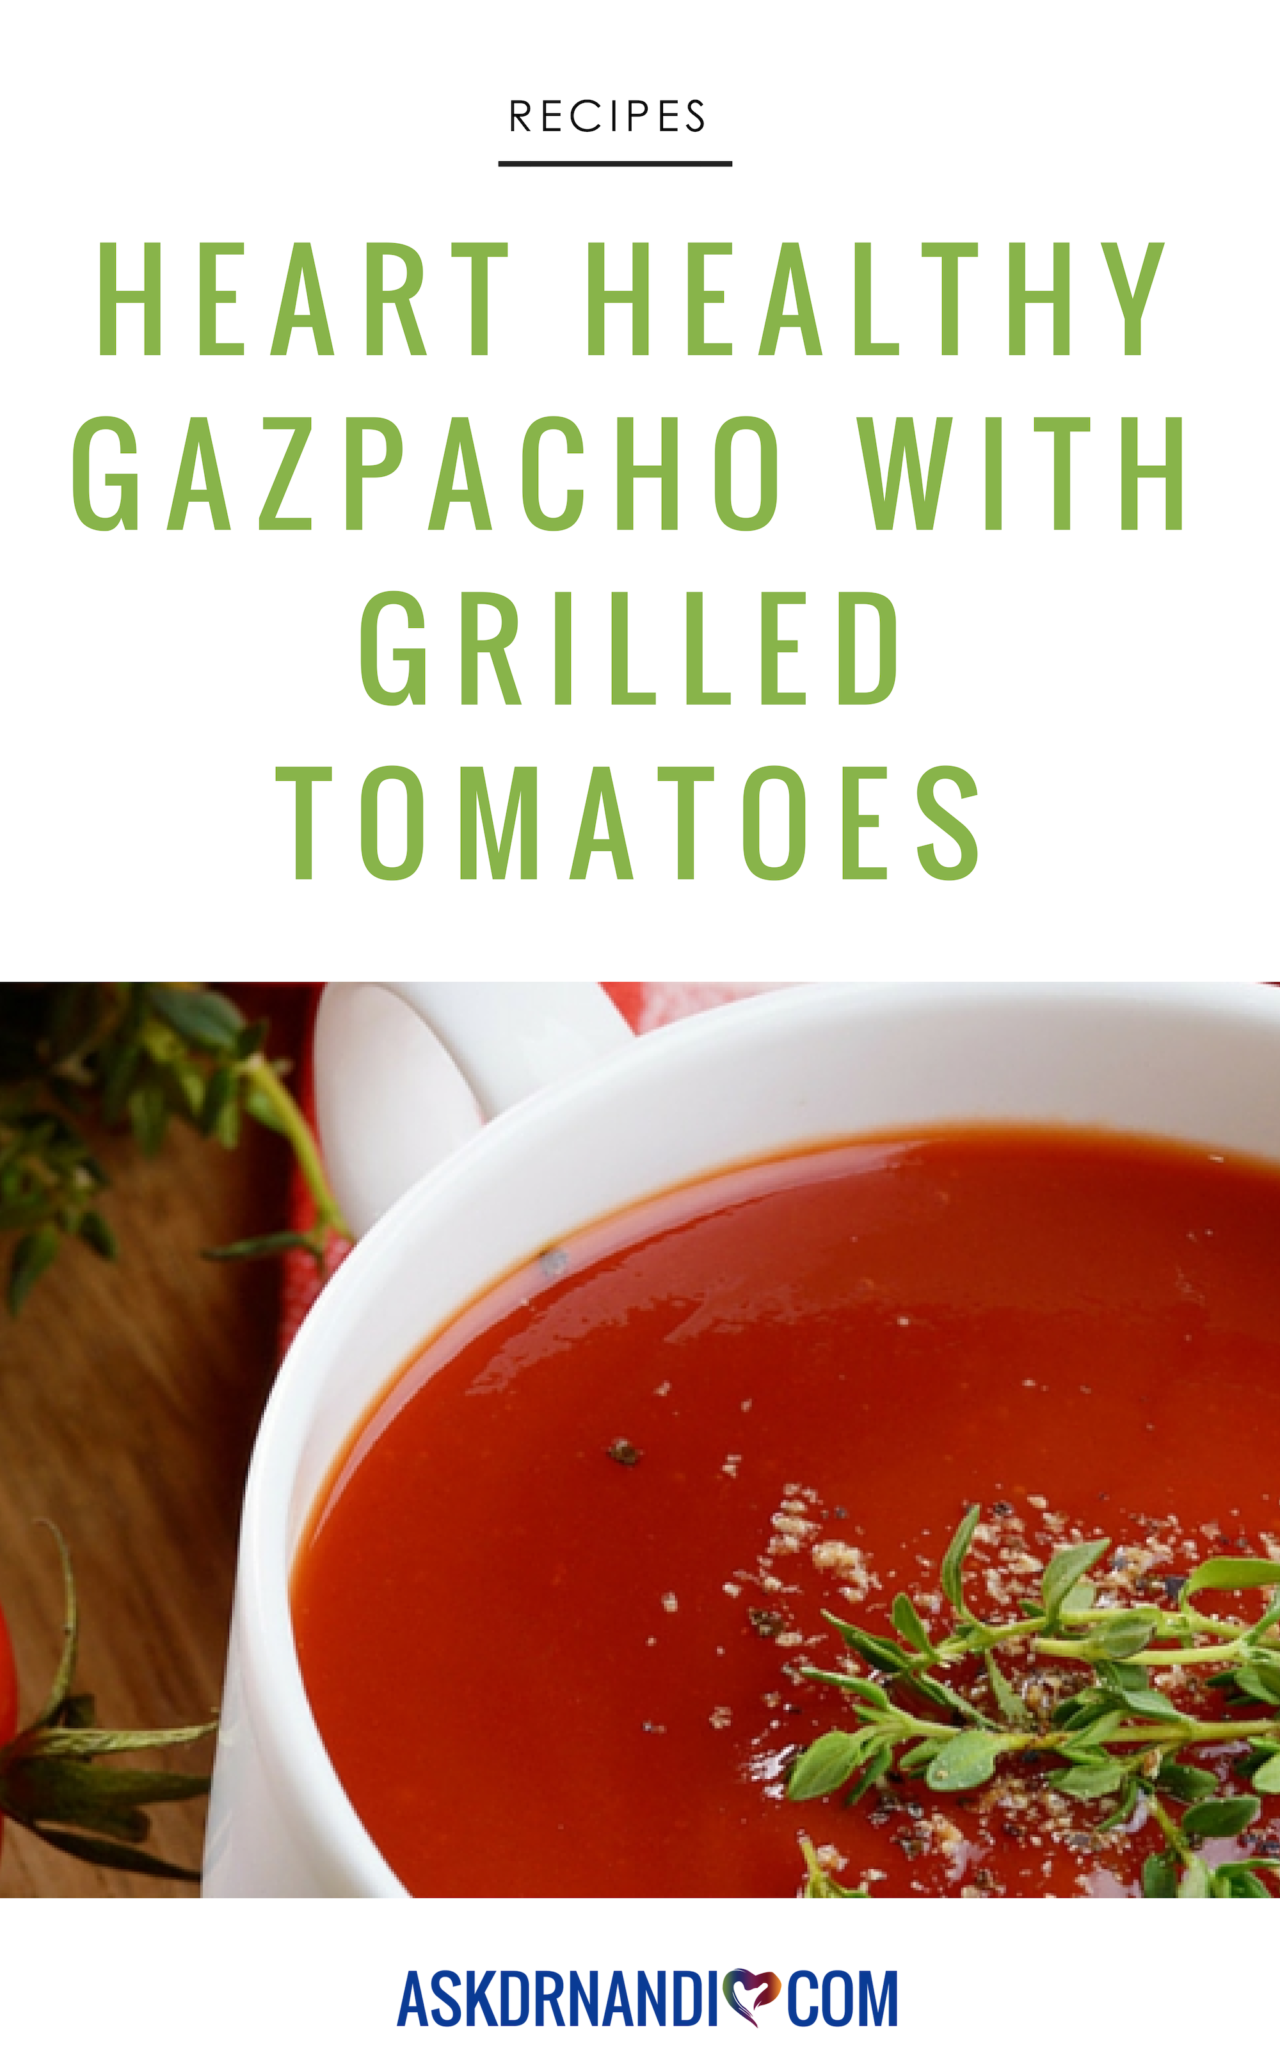 Dr. Nandi\'s Amazing Gazpacho with Grilled Tomatoes Recipe!